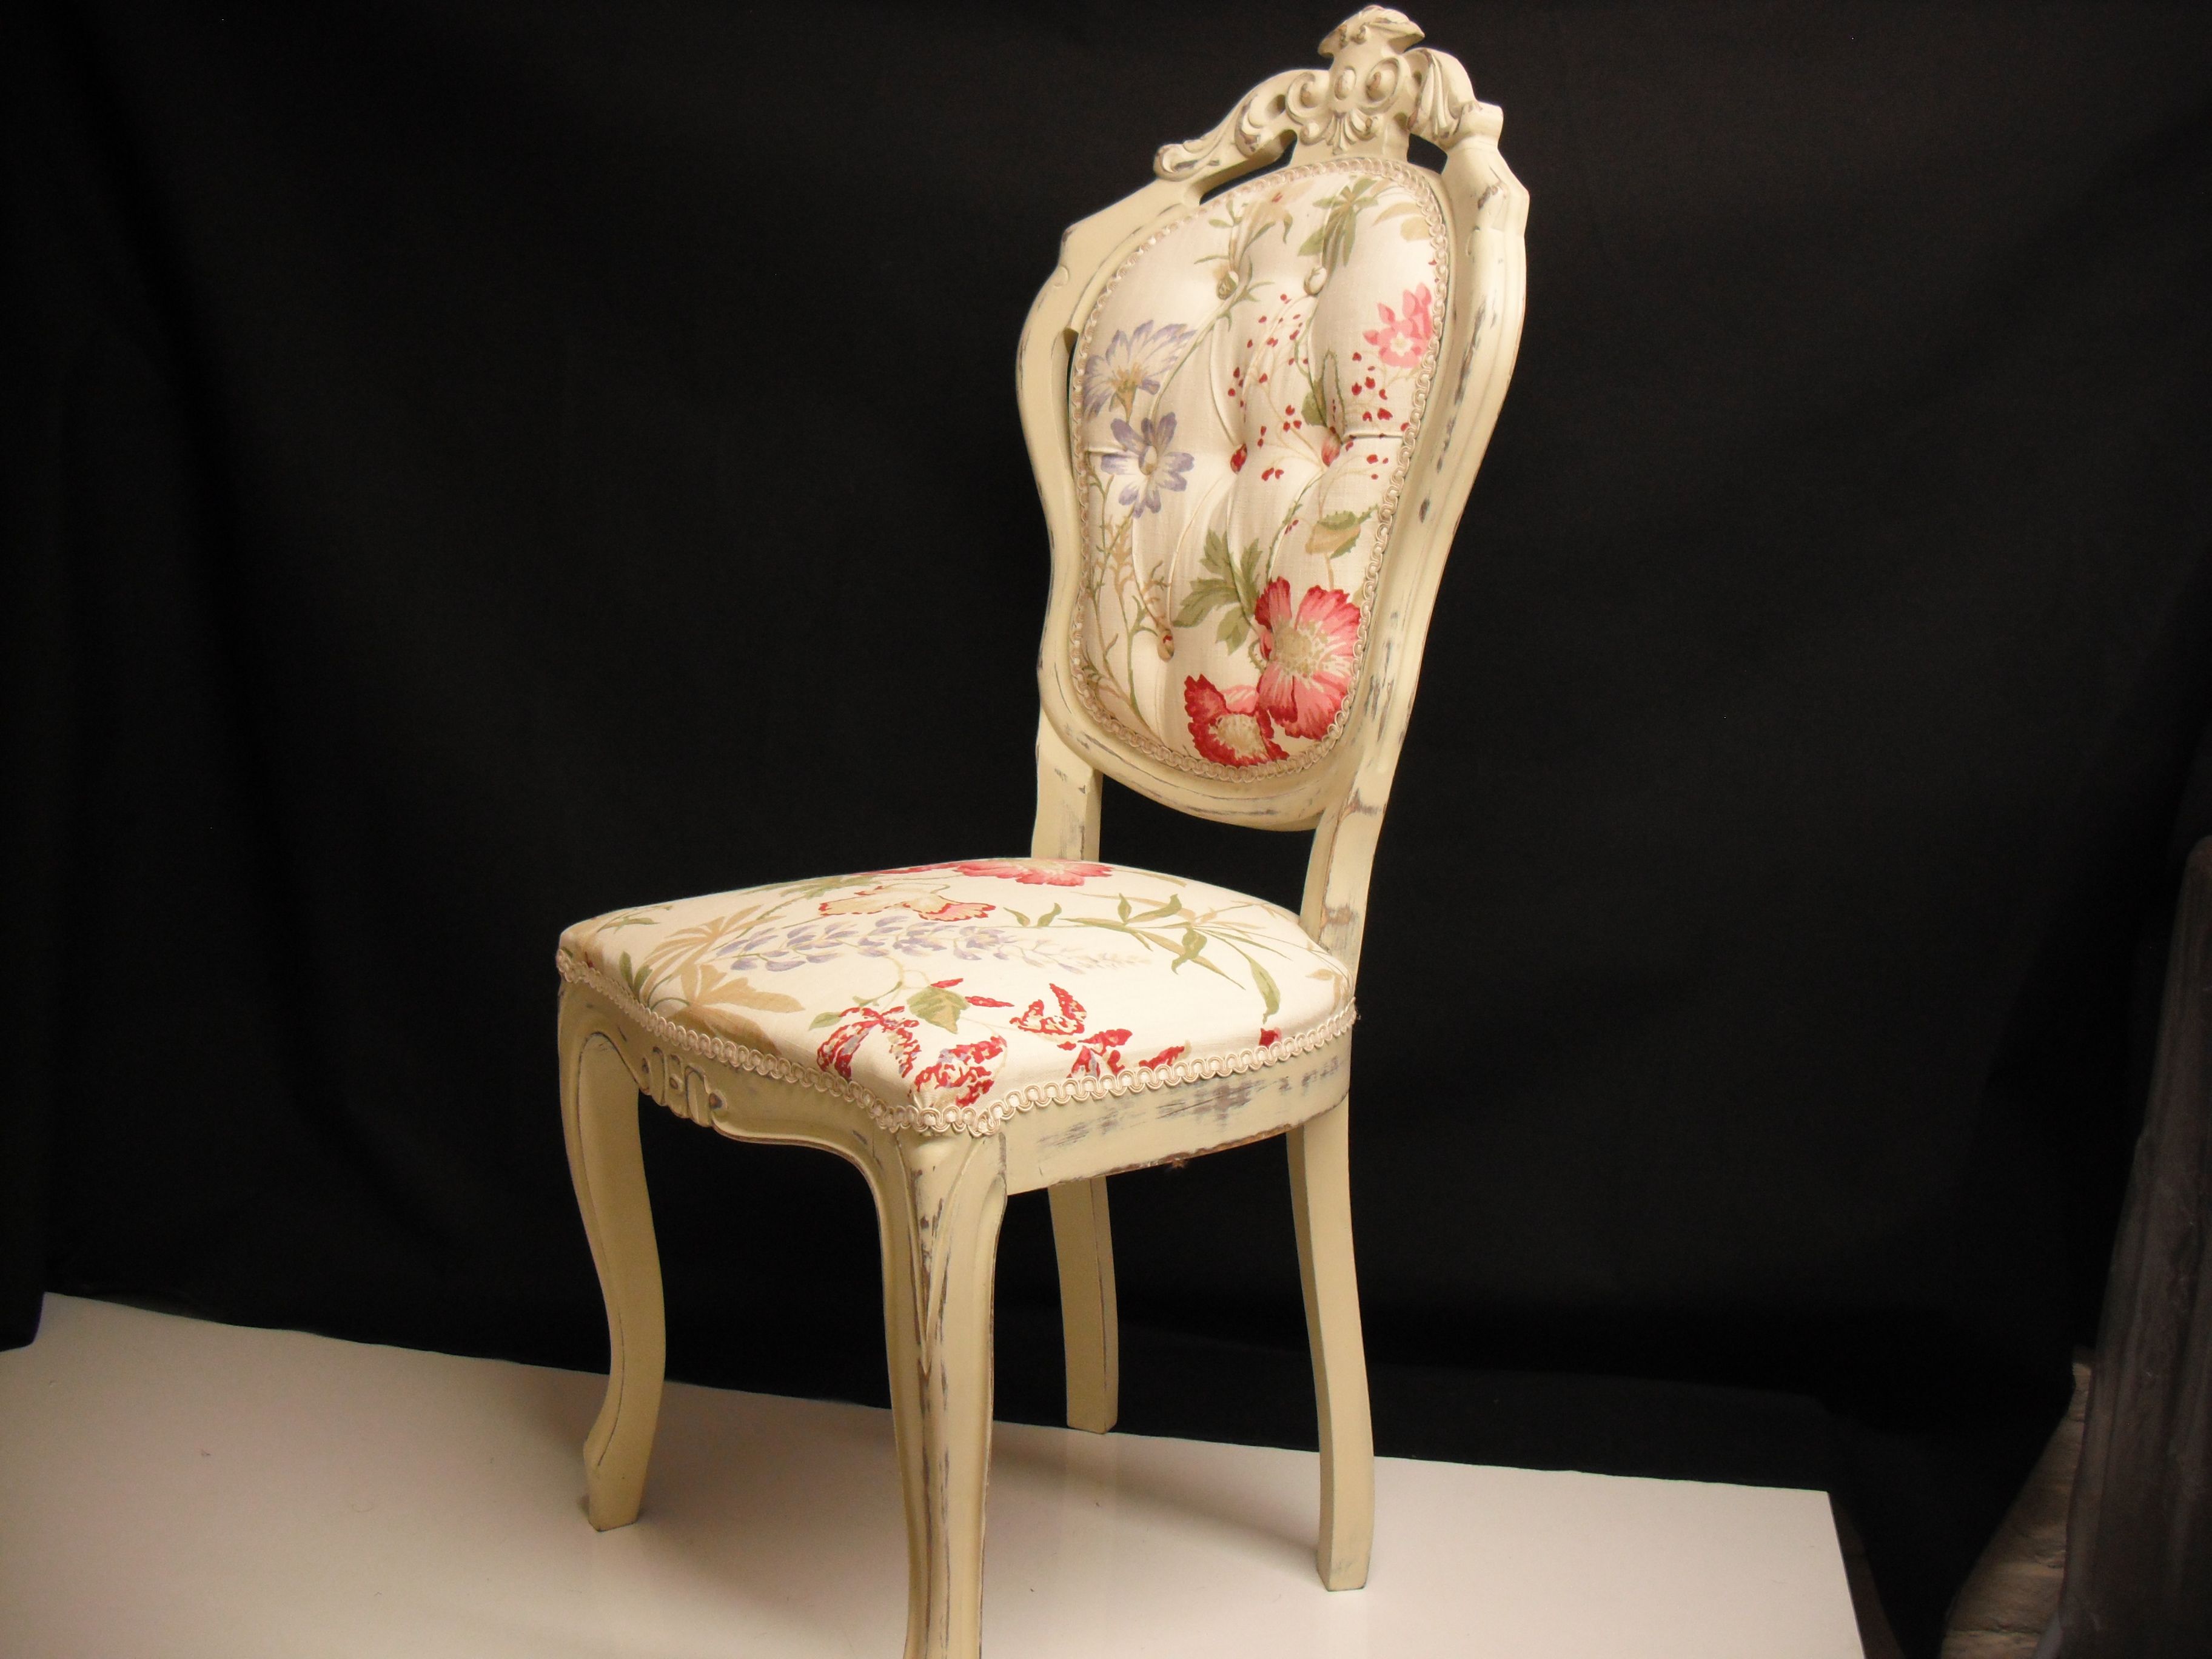 Floral Laura Ashley recover for Italian carved chair